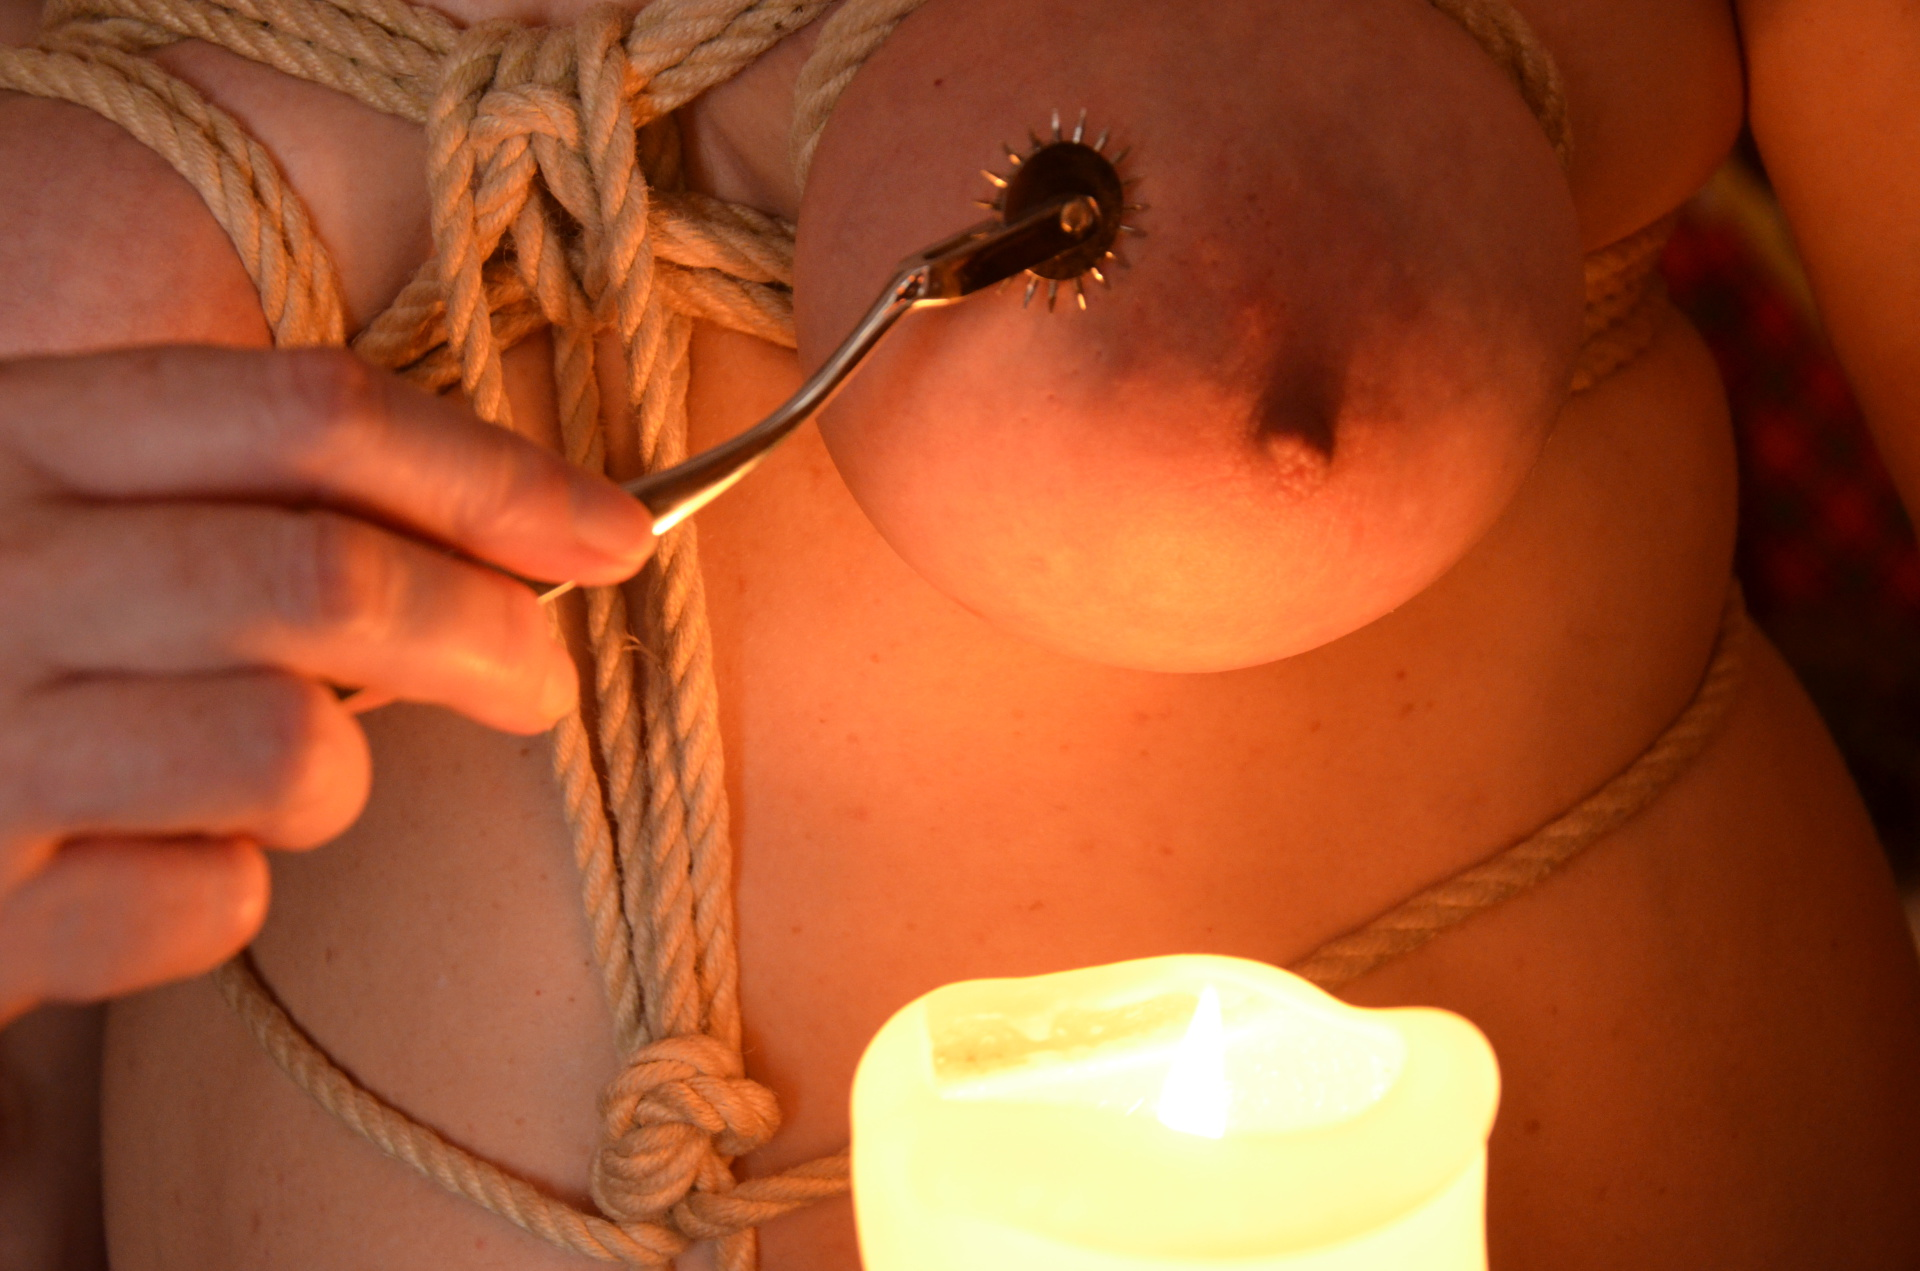 sensual rope and breast play